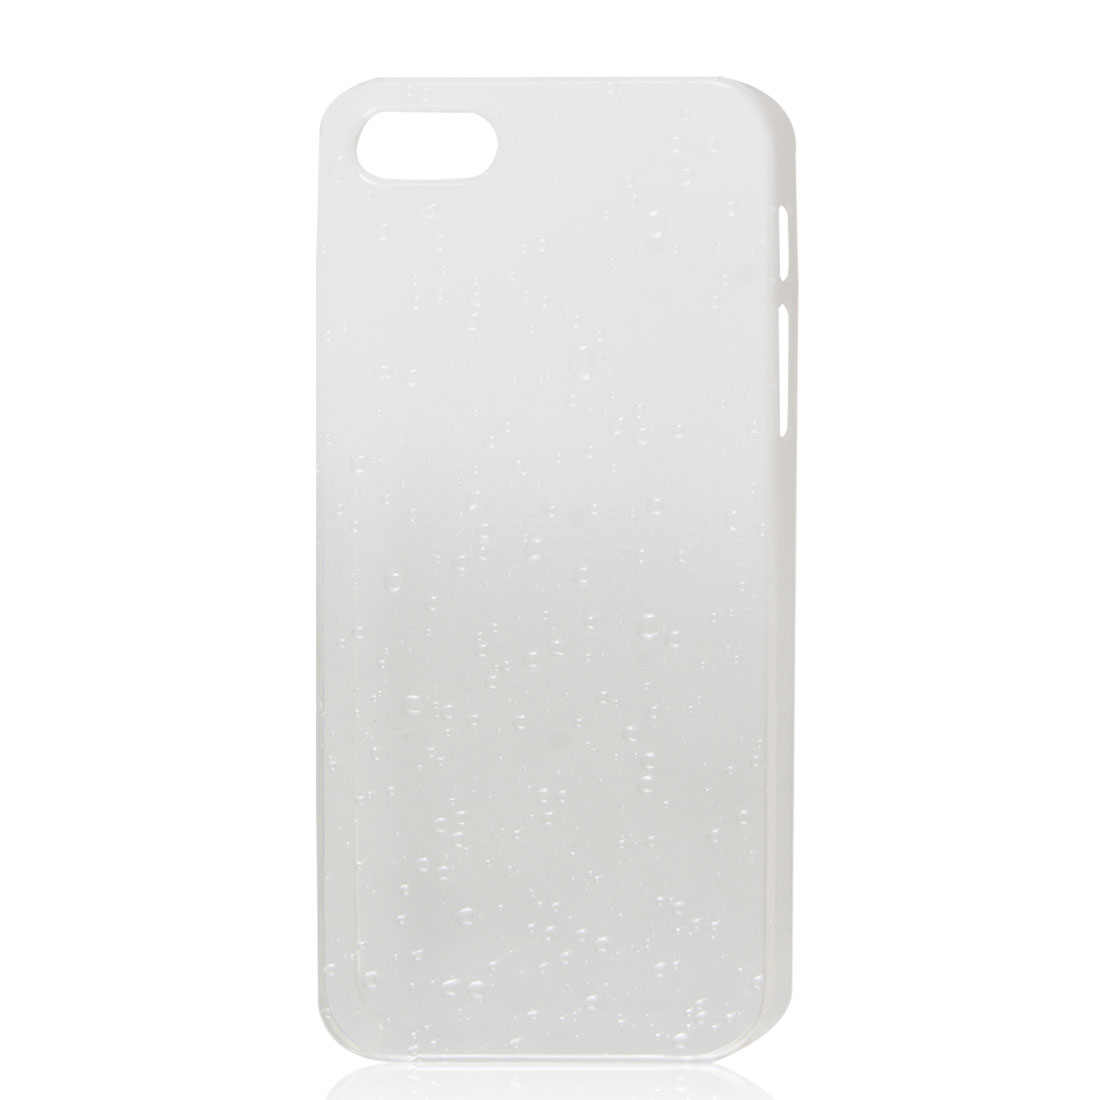 Gradient White Clear 3D Raindrop Hard Back Case Cover for iPhone 5 5G